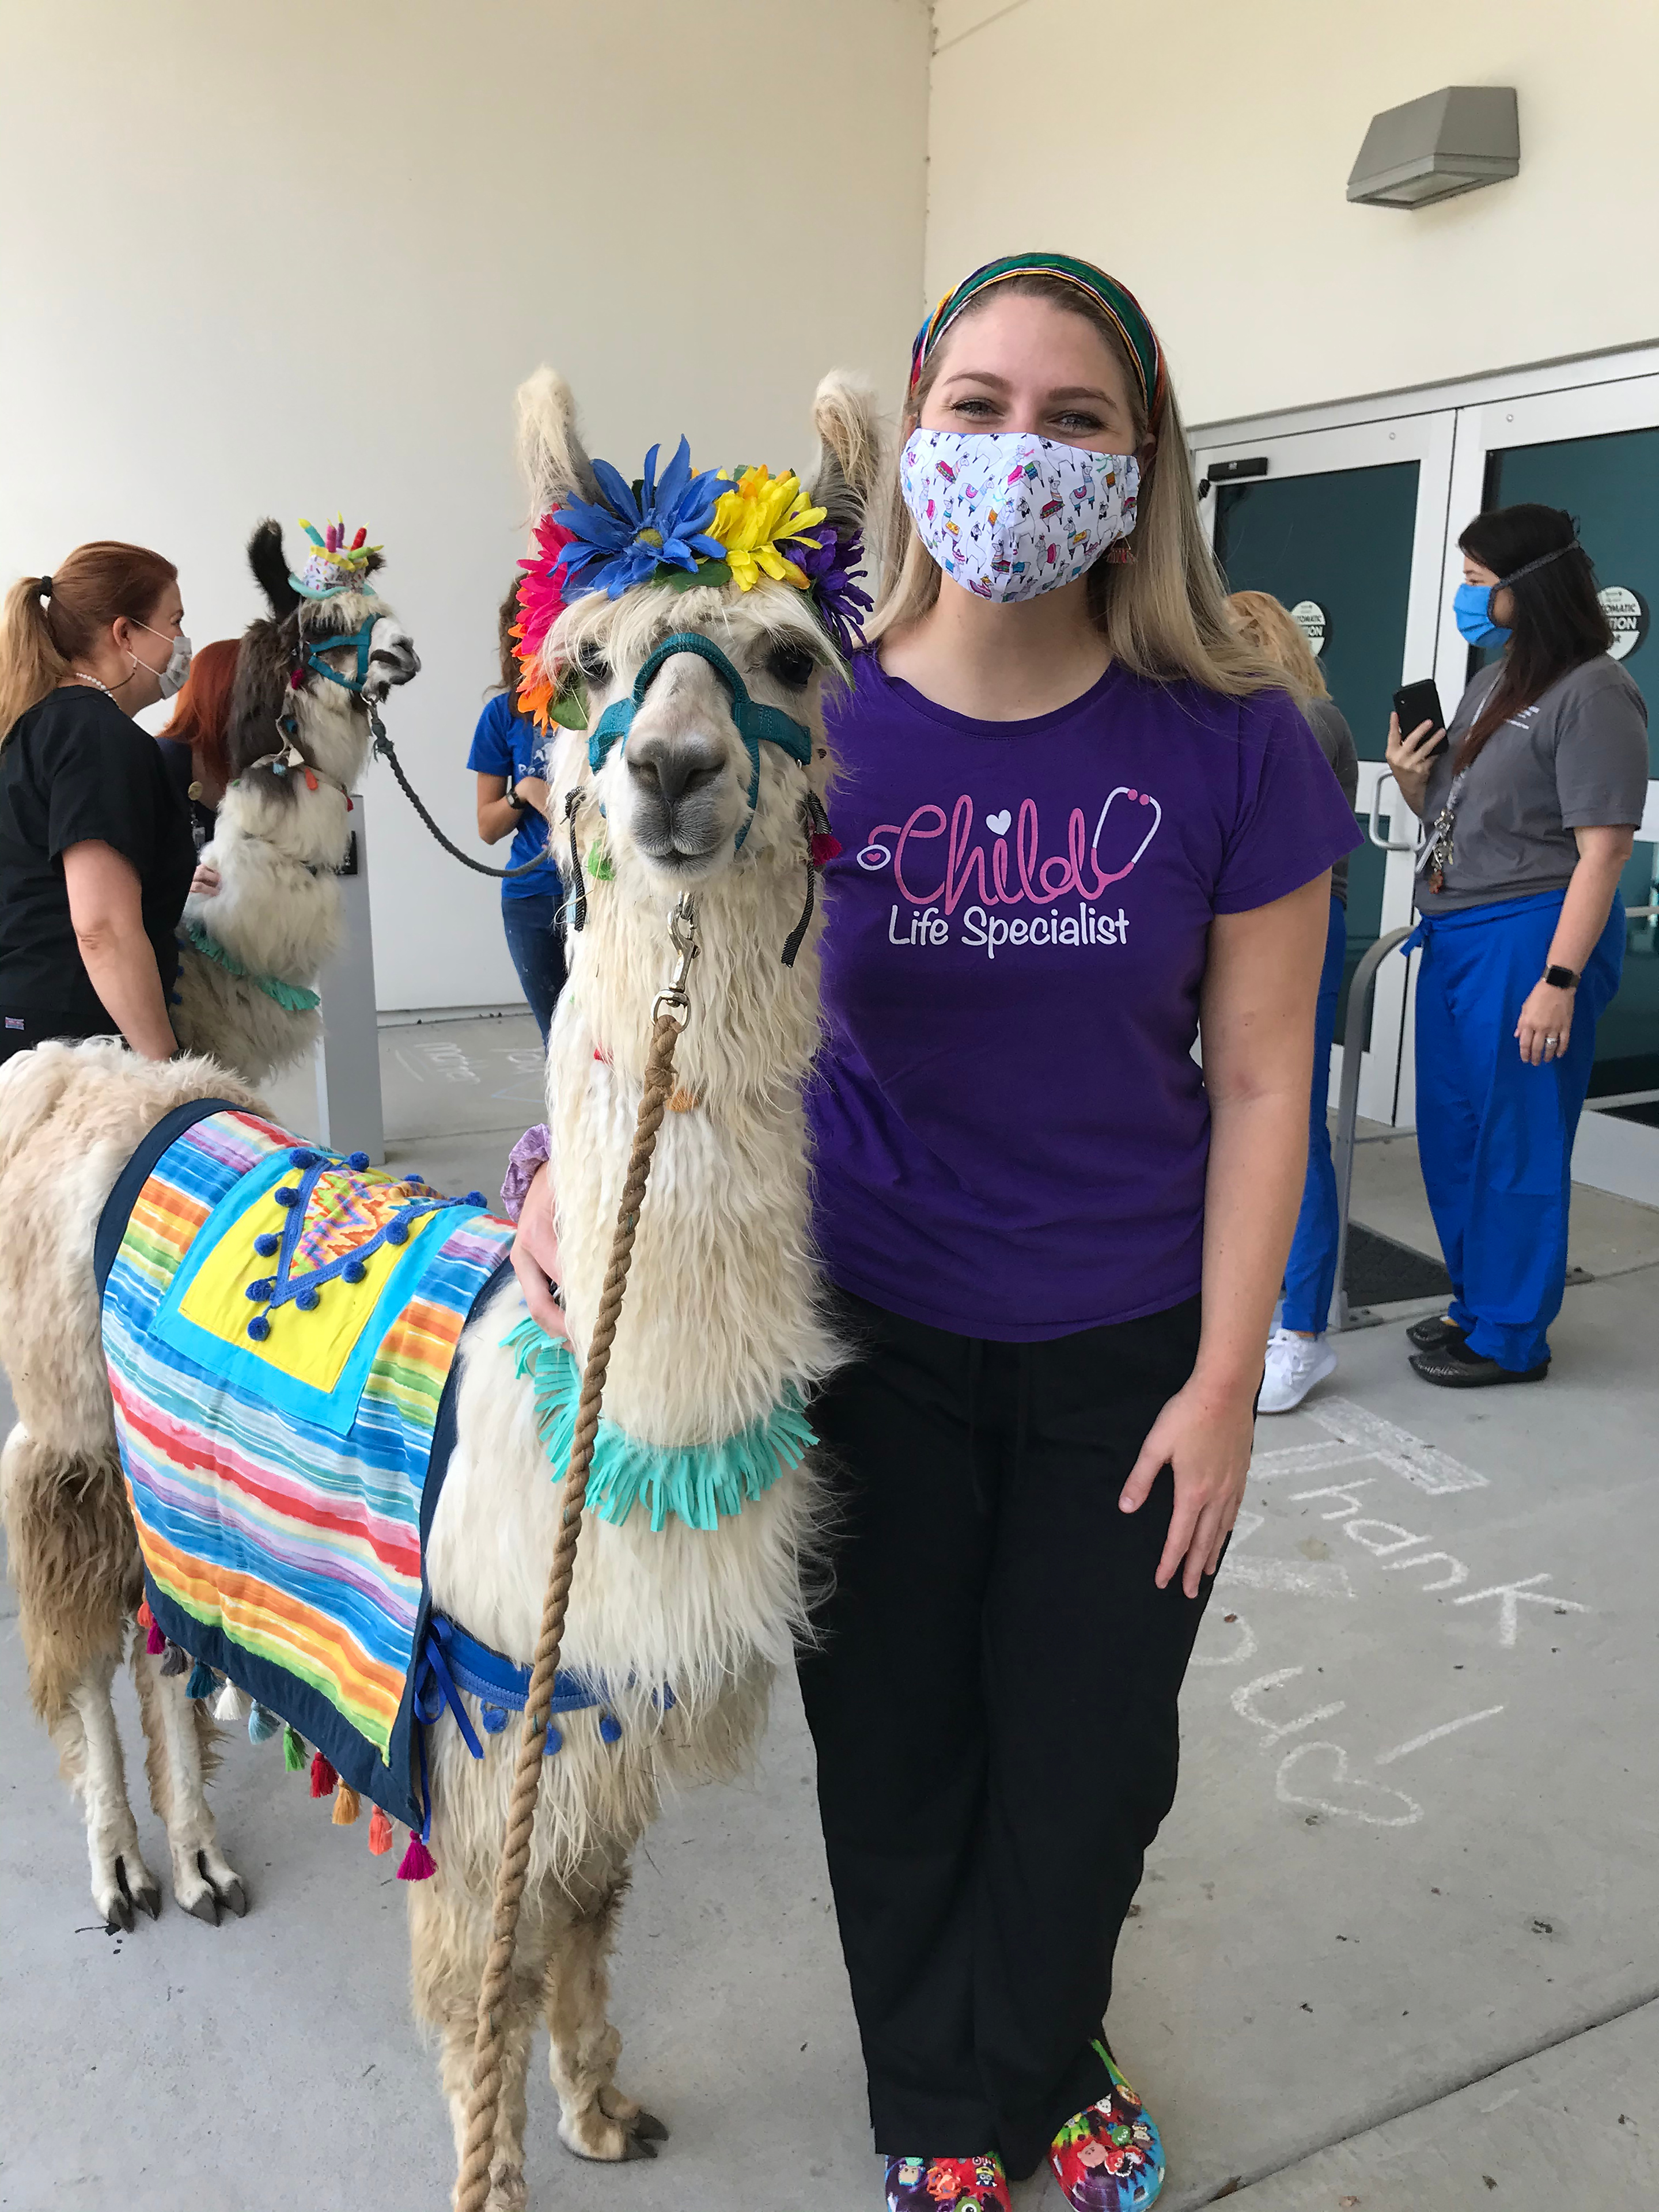 Mary Mason Beale brings in a llama for a coworker's birthday.